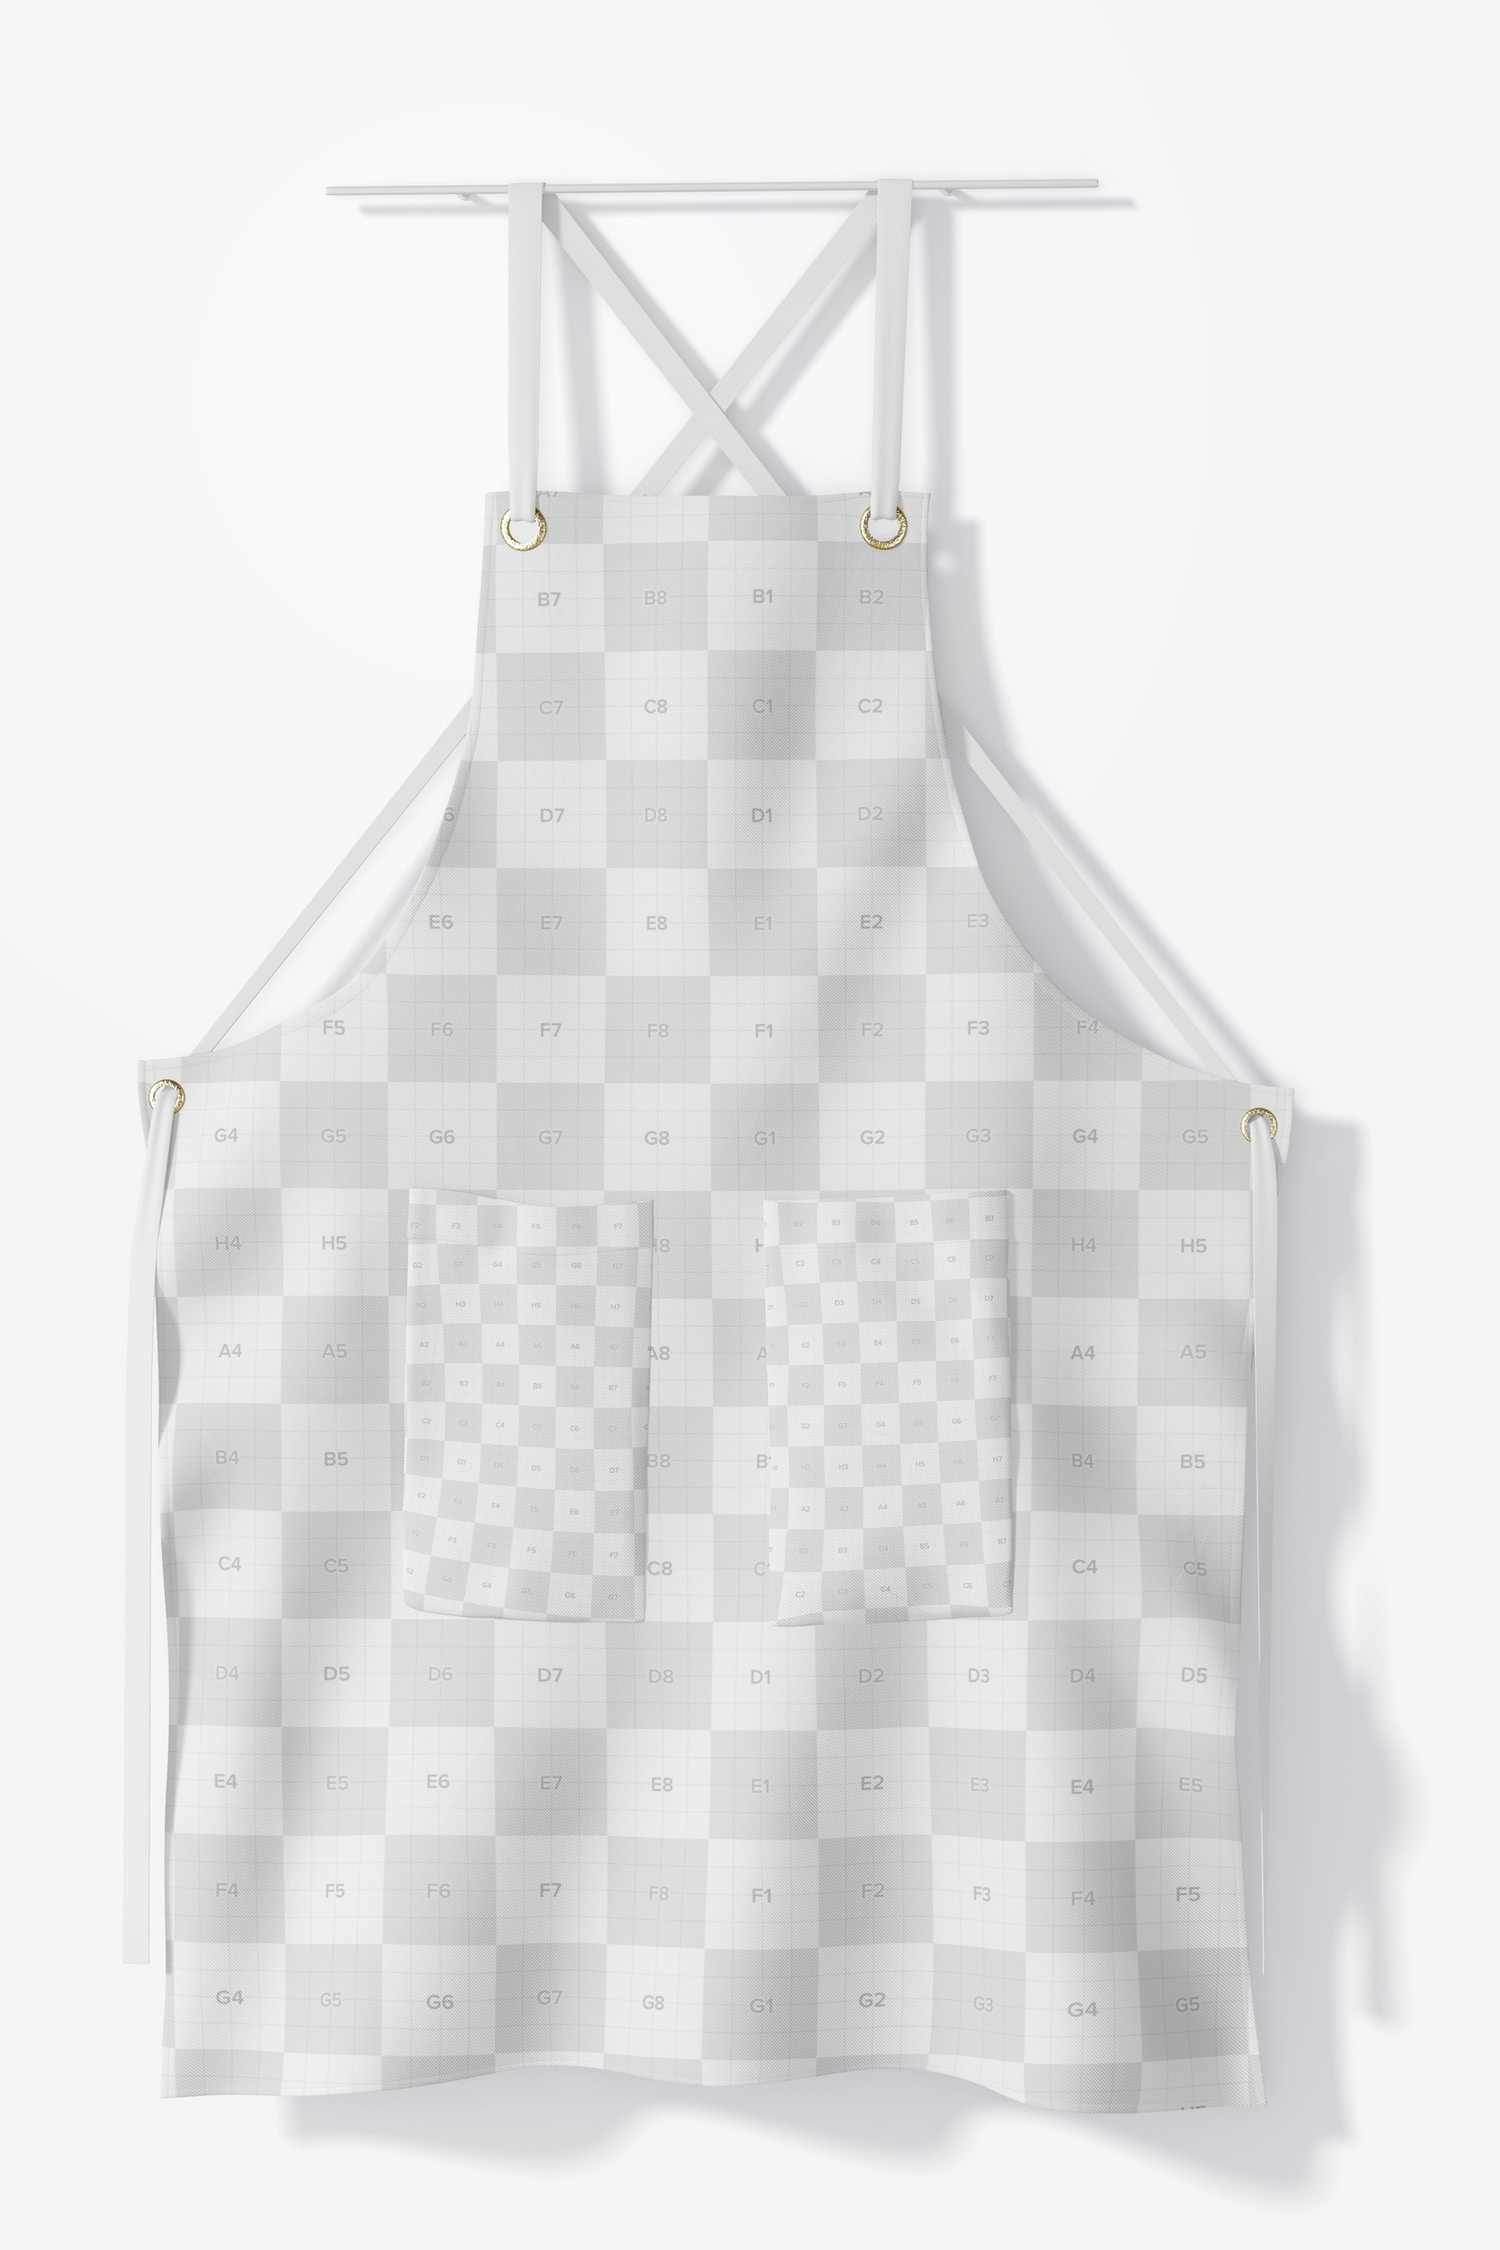 In this mockup you will be able to cuztomize all the apron.